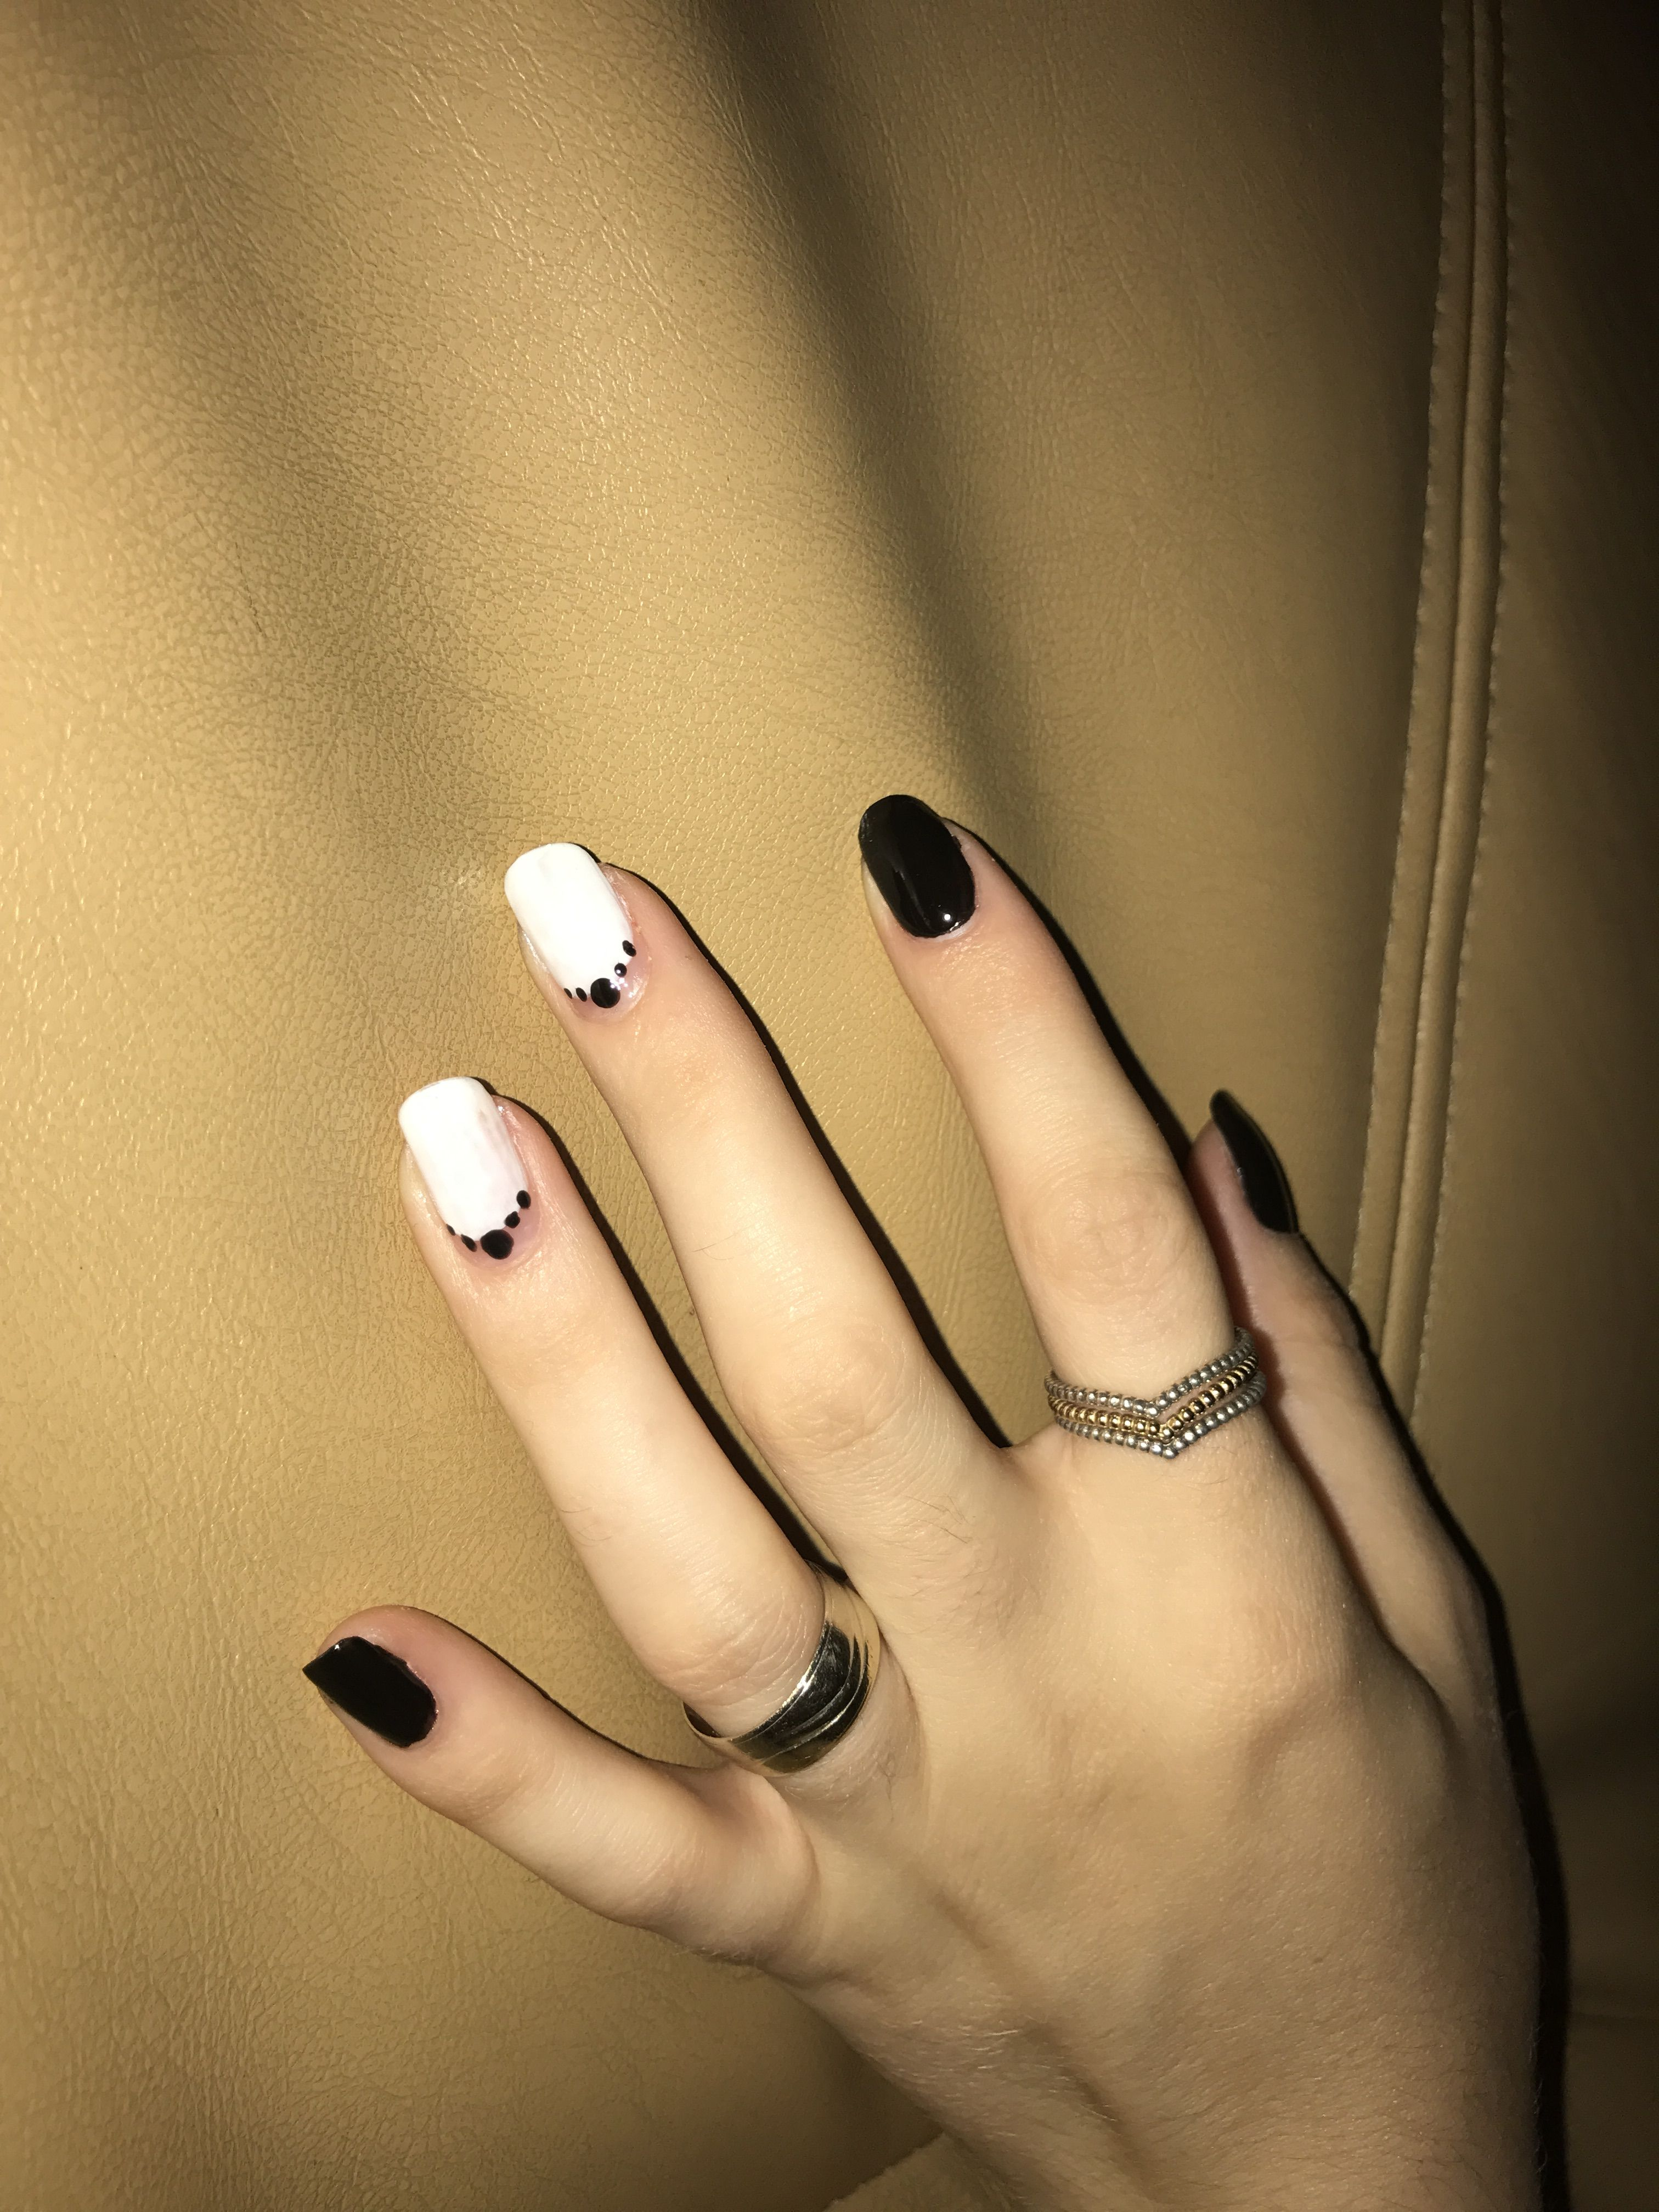 Black and white nails. 2018 trend | Nails, unghii ...